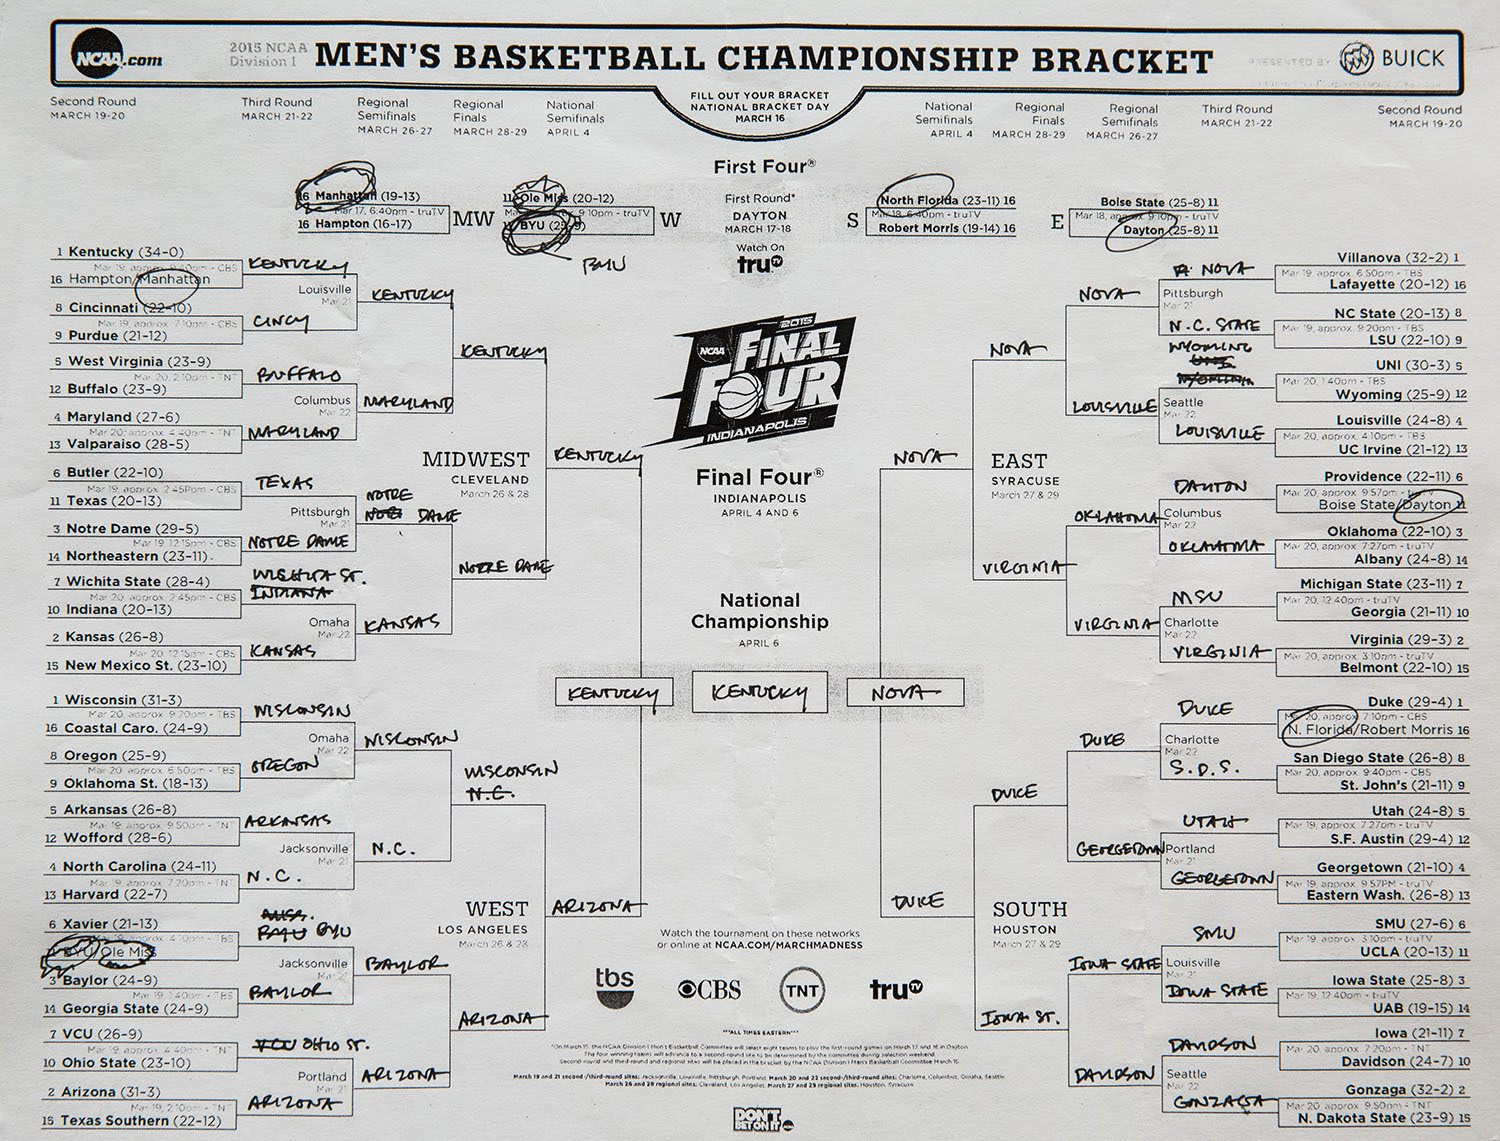 According to a version of the bracket published on the White House ...